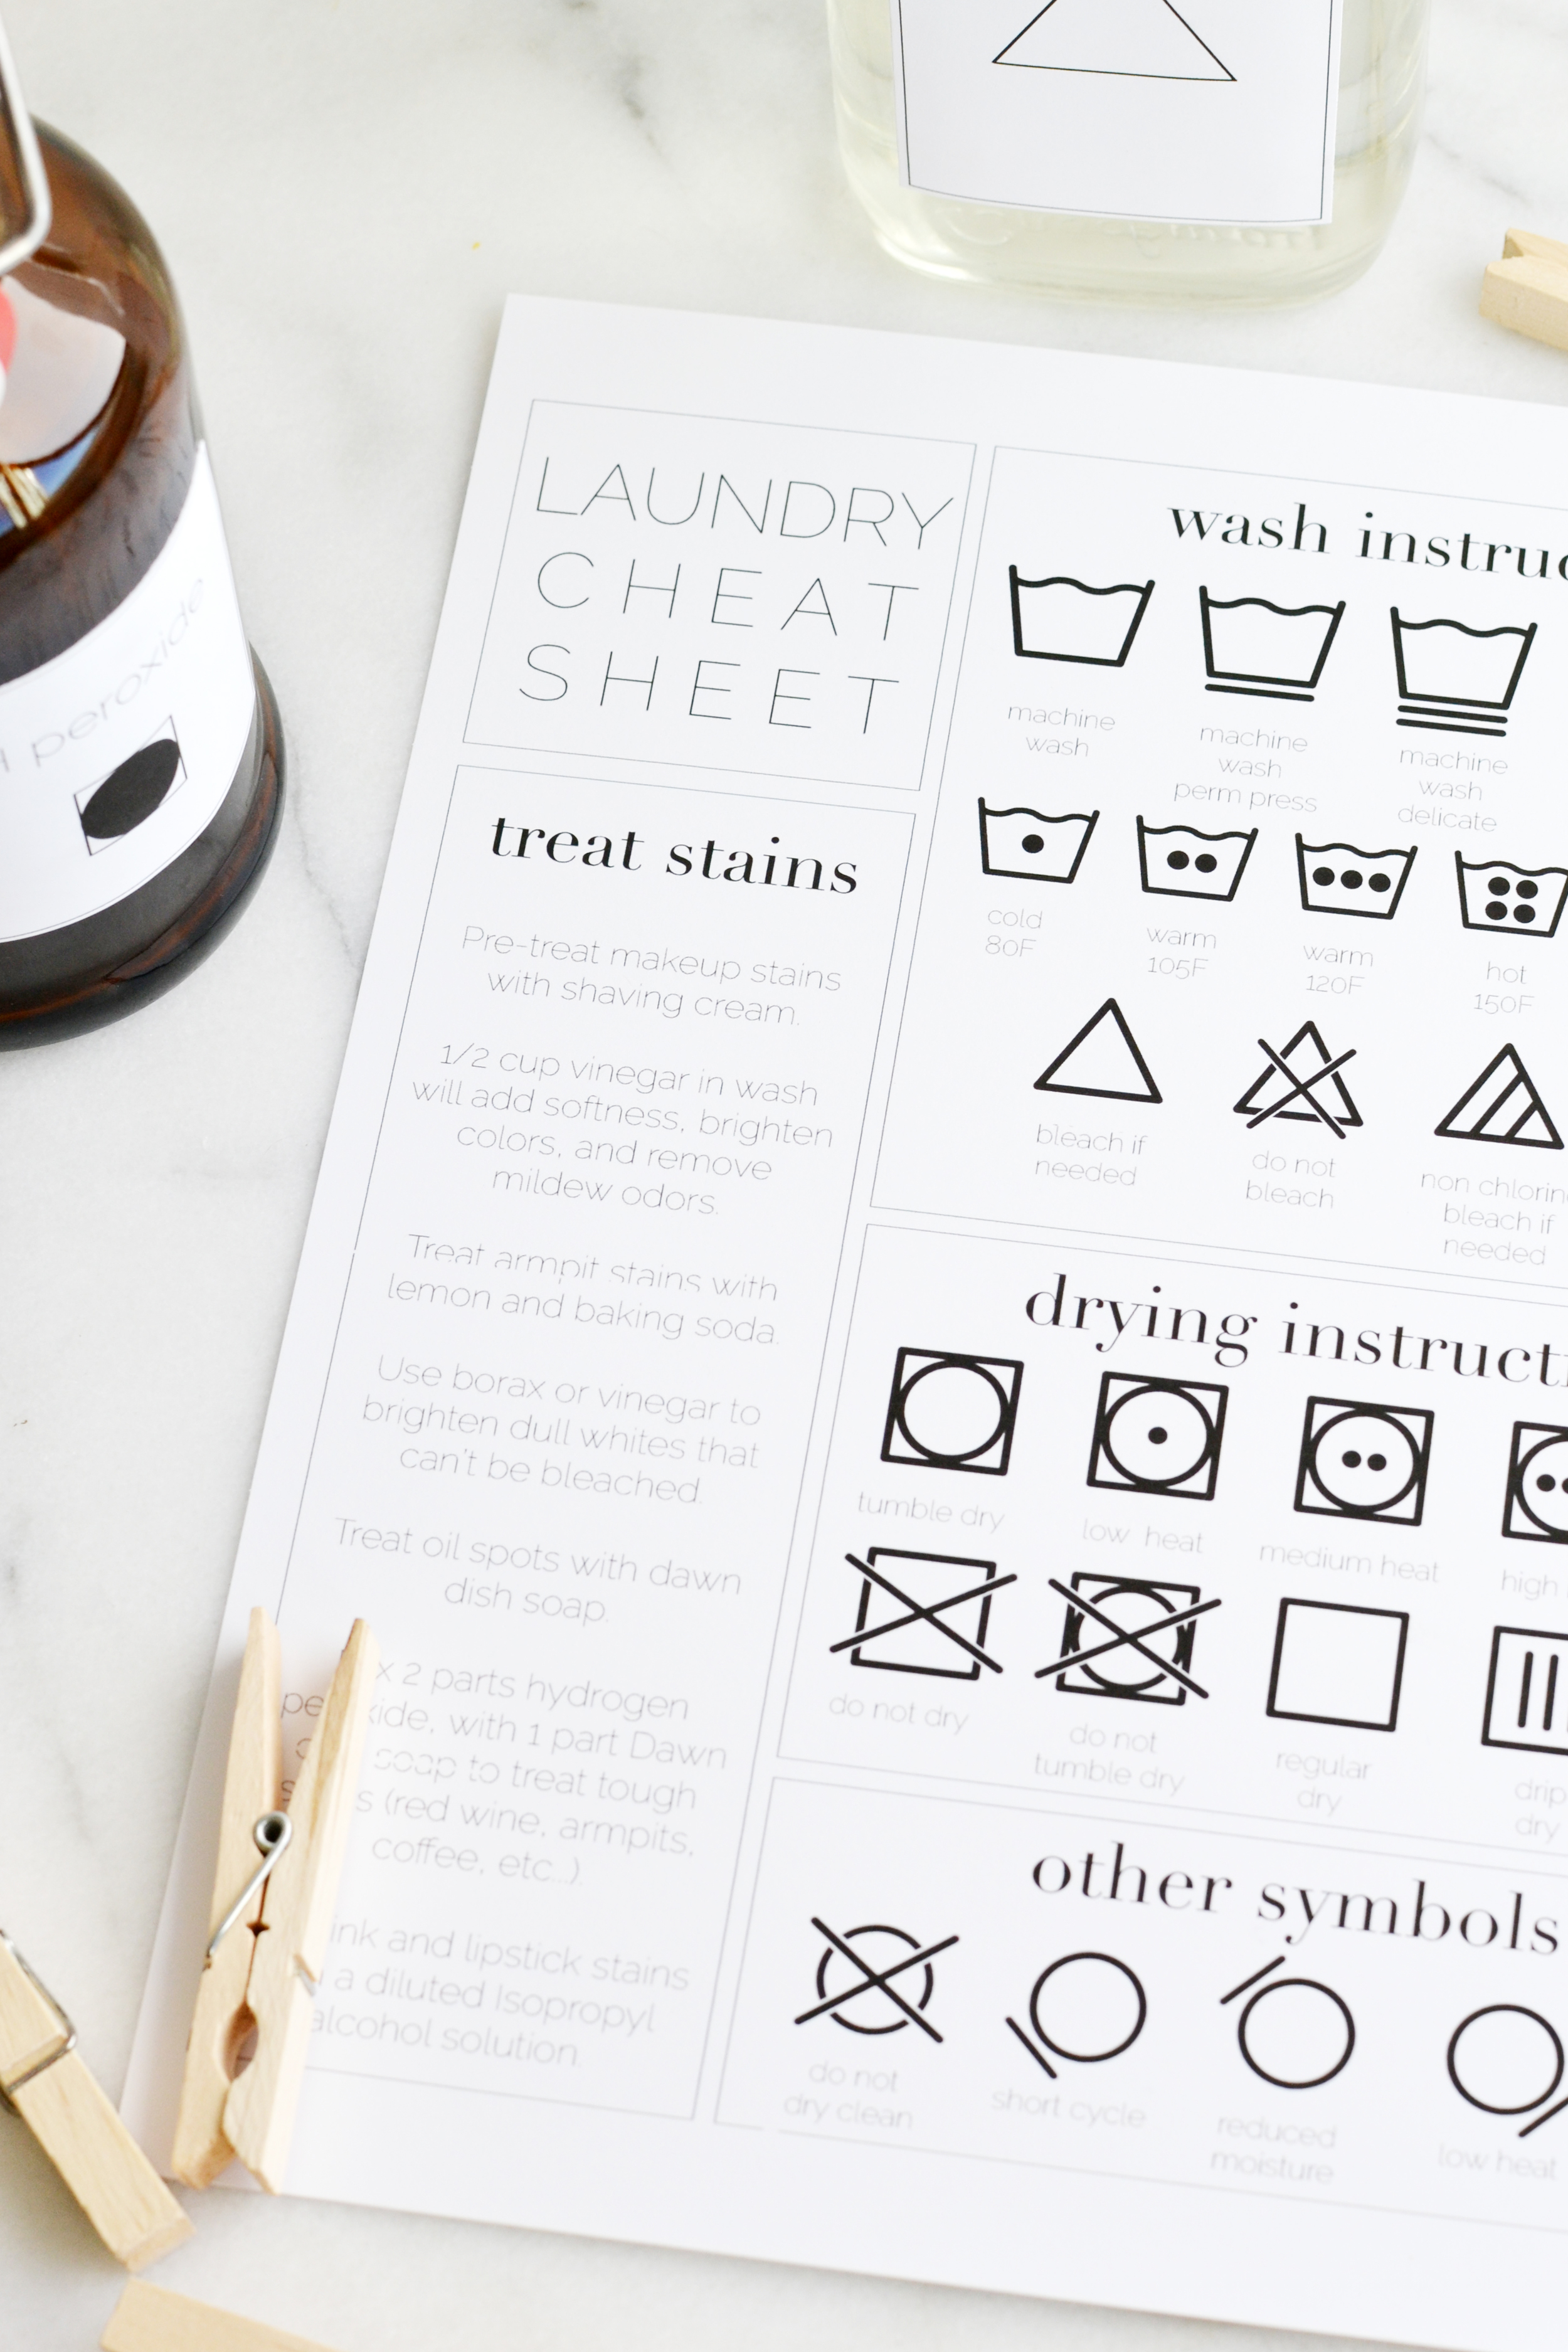 Laundry room organization tips & a free label printables from boxwoodavenue.com